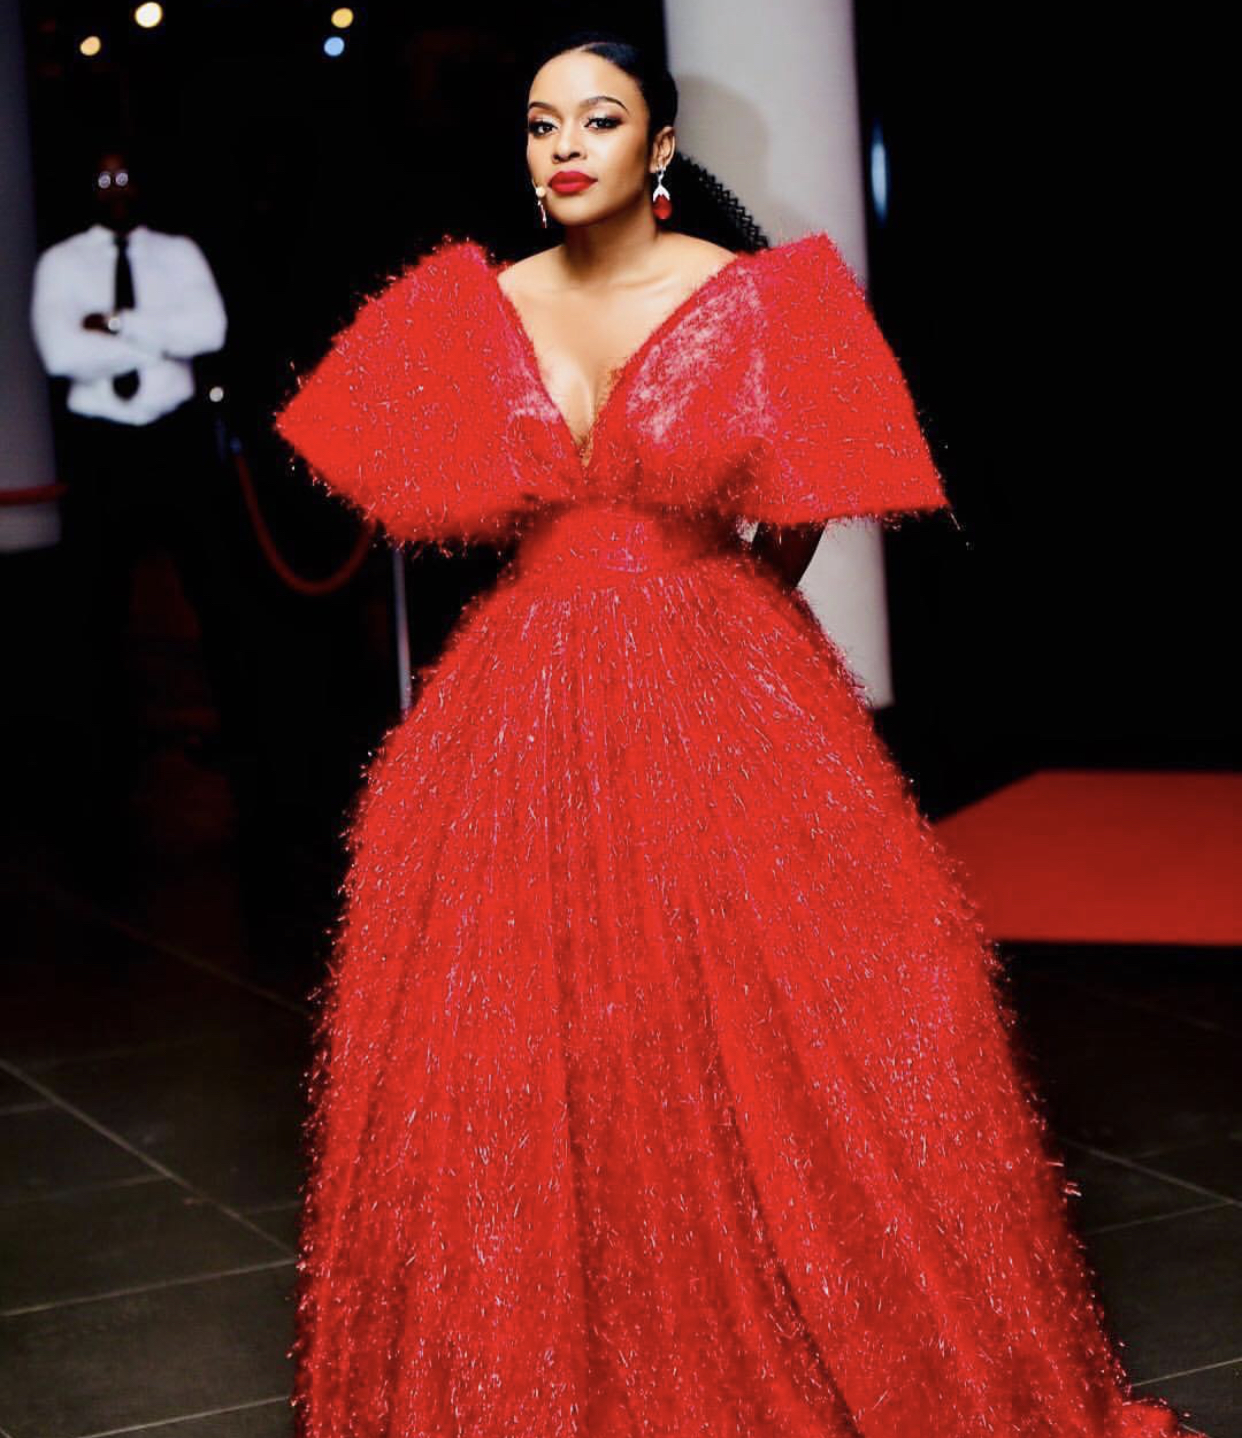 10-times-sa-actress-nomzamo-mbatha-ruled-the-red-carpet-in-2018